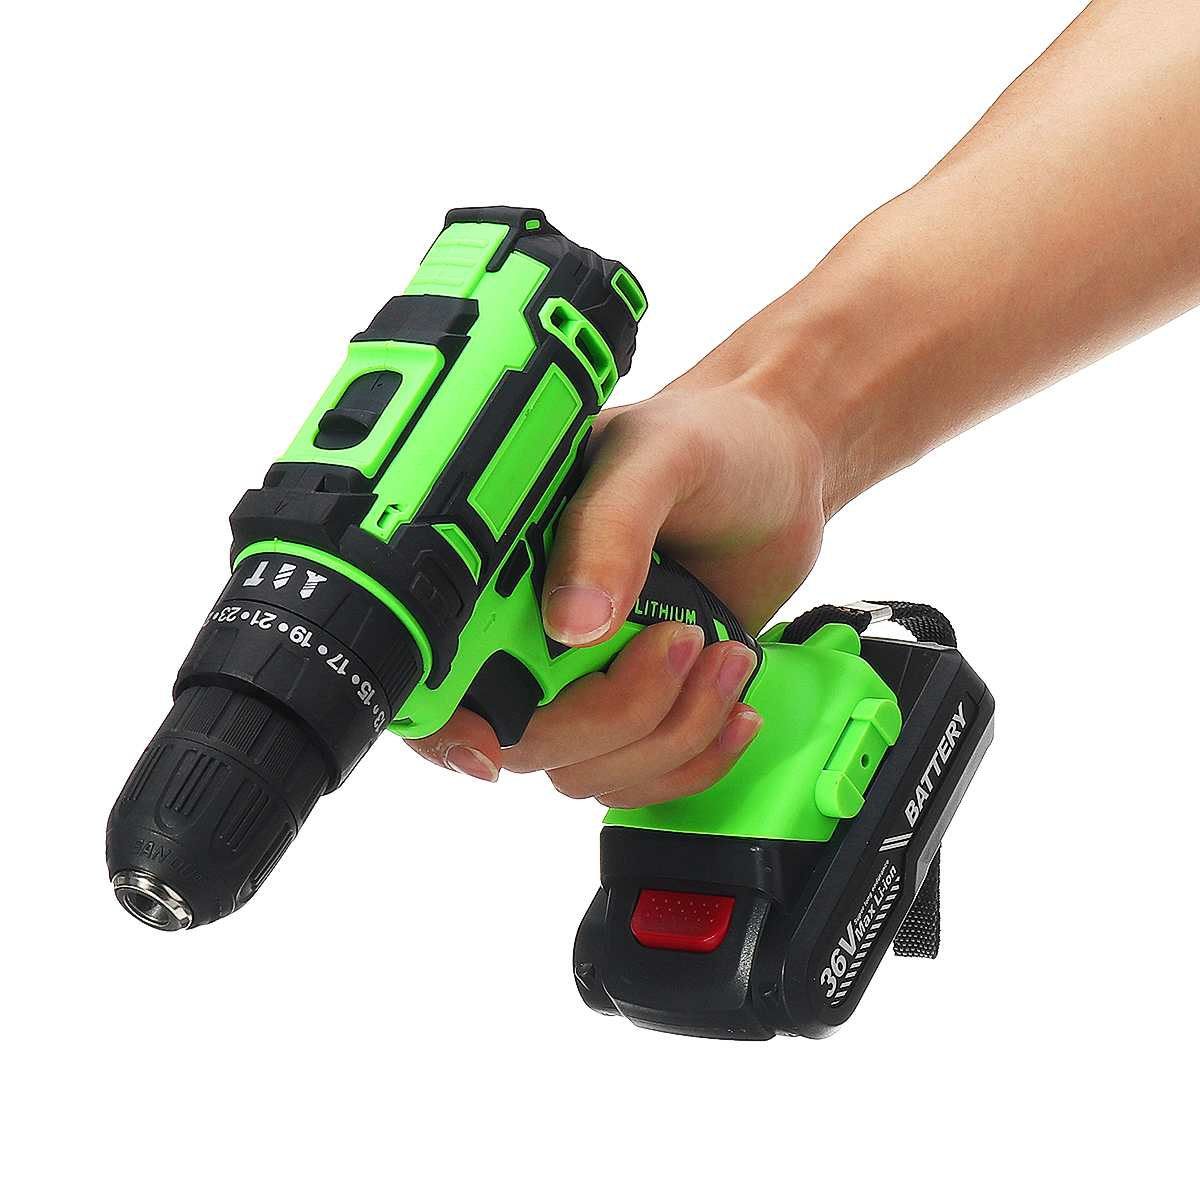 25+3 Torque 36V Cordless Electric Screwdriver Drill LED Working Light DIY Home Hand Flat Drill Power Tools Li-ion Battery